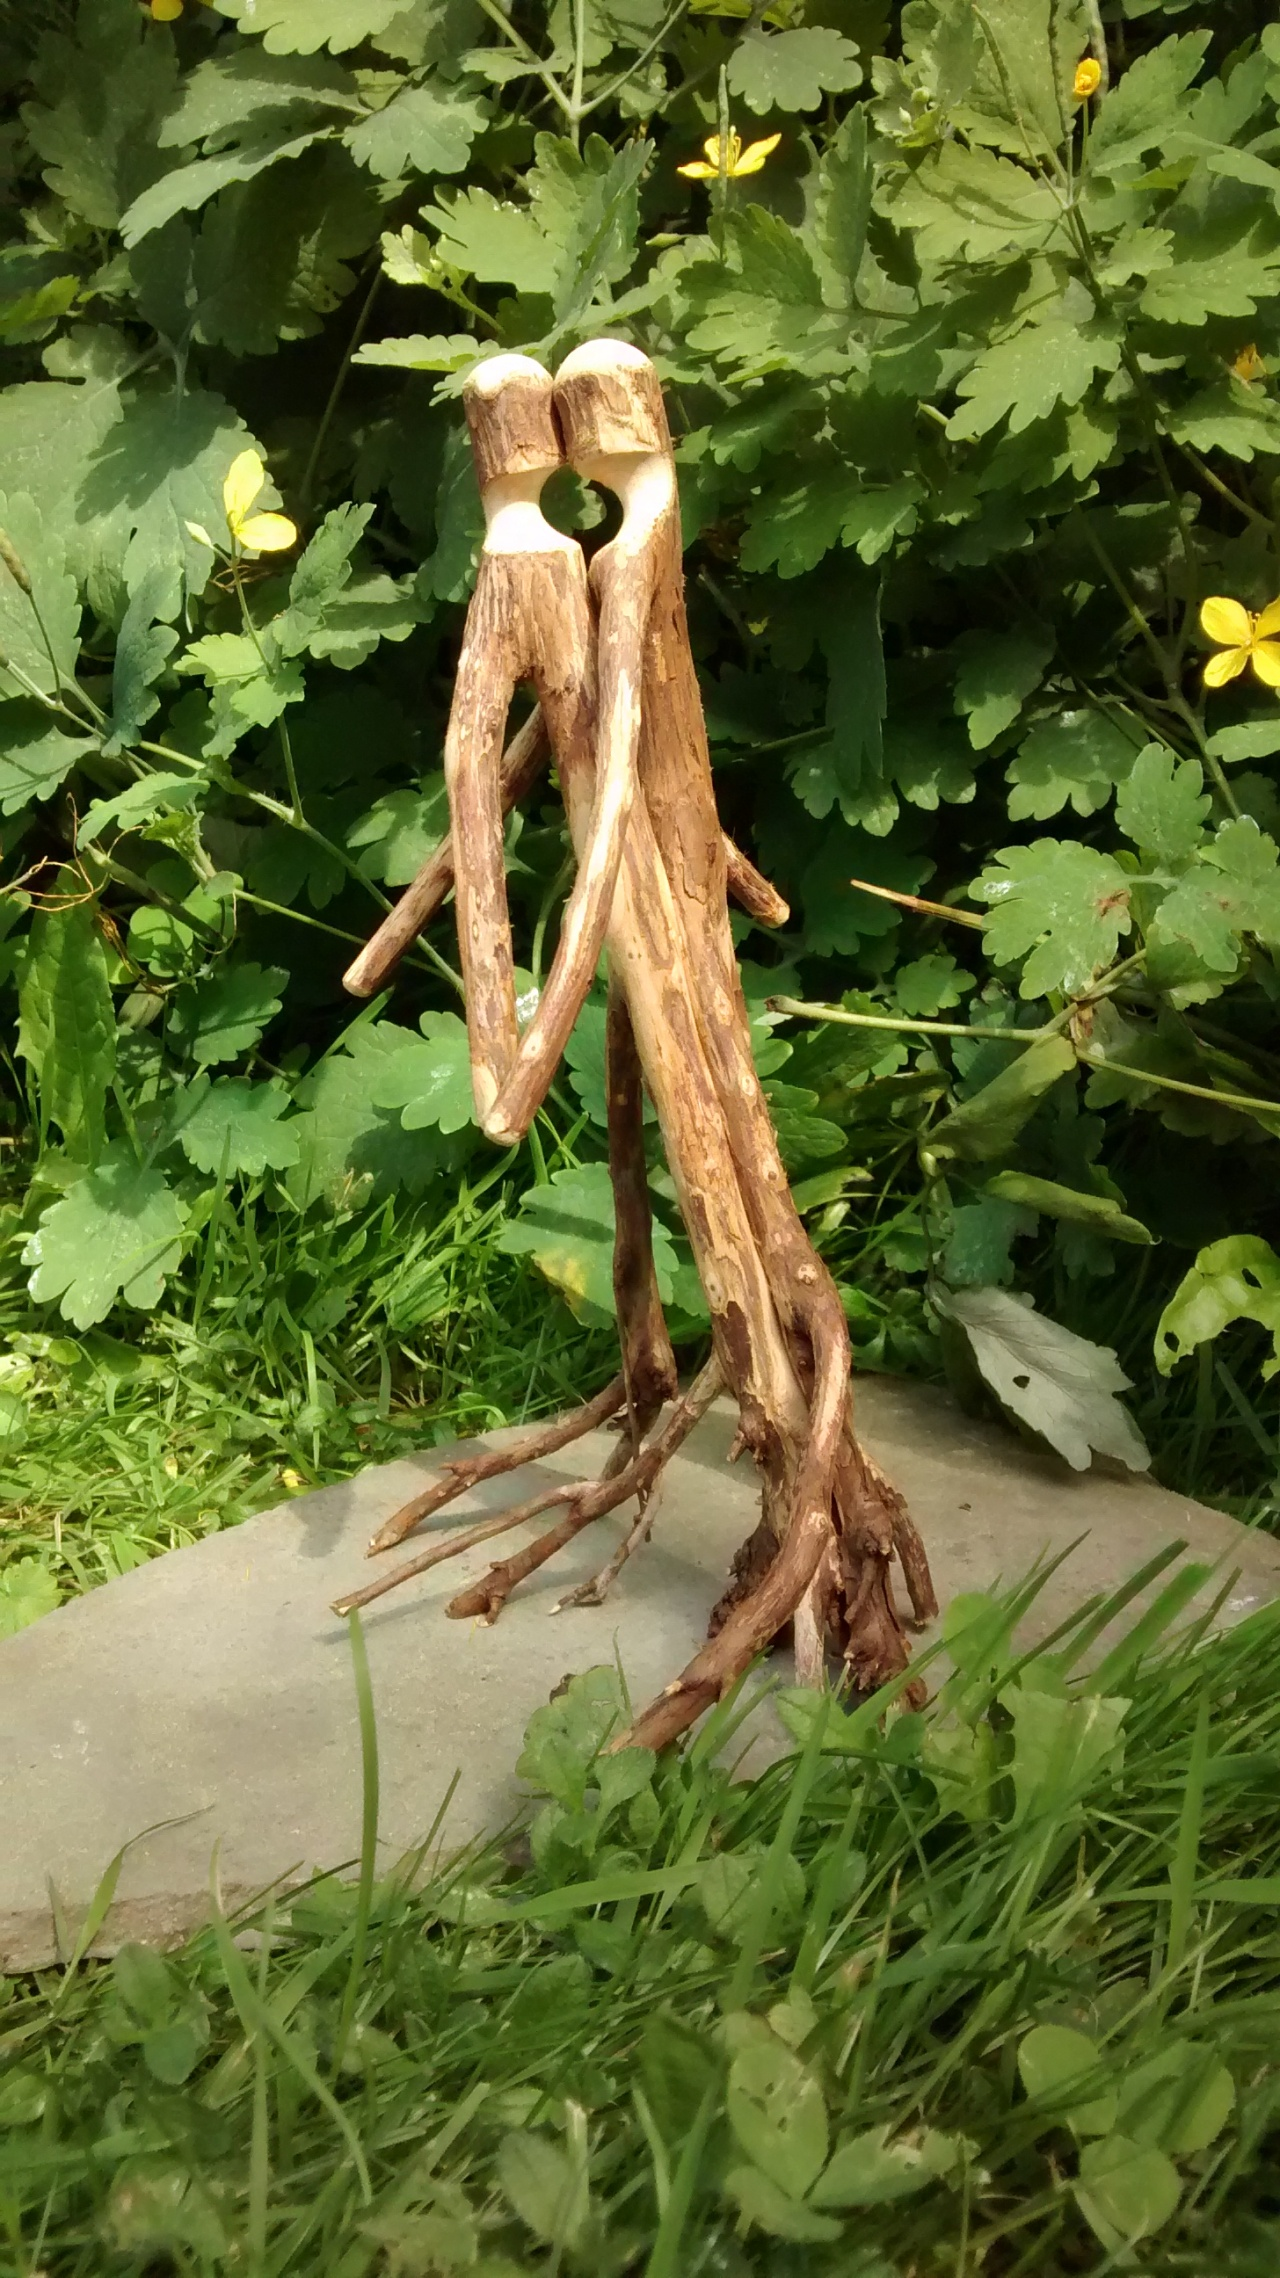 Stick Art August Sculpture #82015